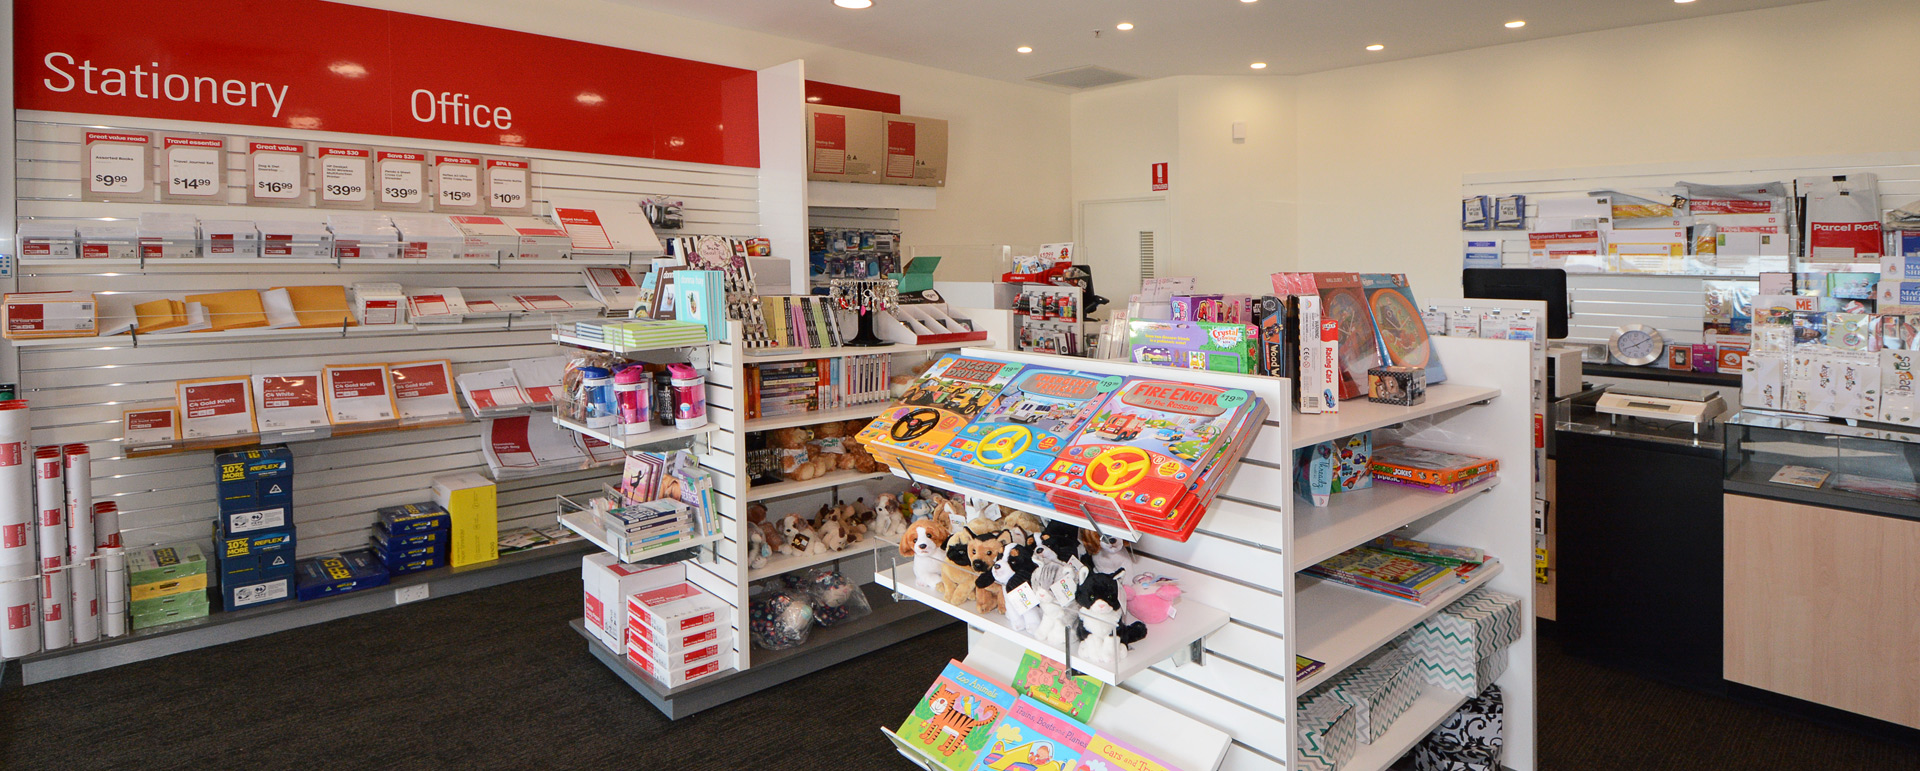 News Agency Store Fitouts